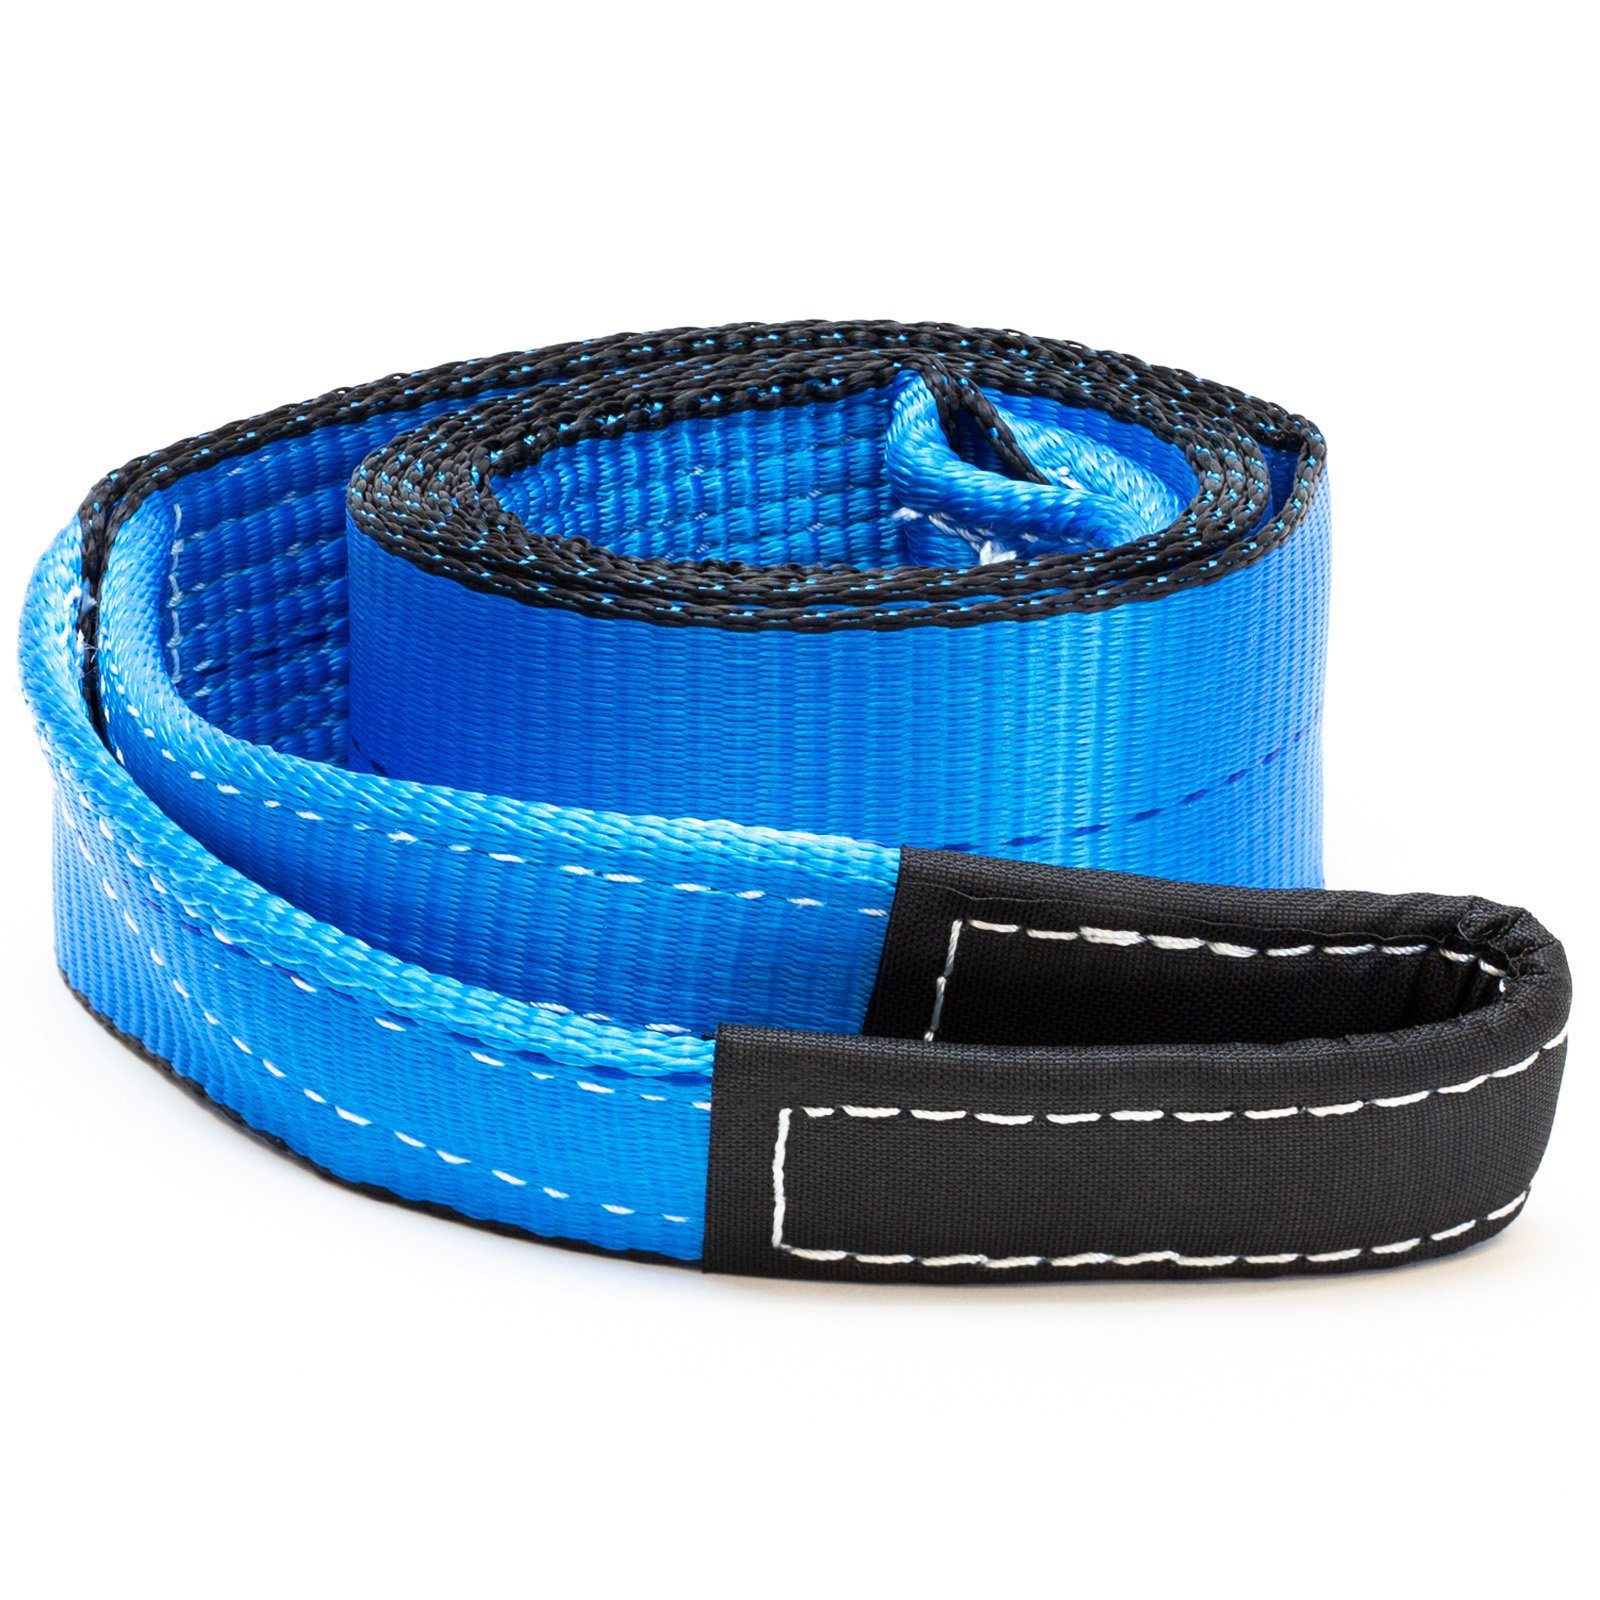 Driver Recovery 3'' x 8' Tow Strap - Recovery Winch Tree Saver - Extreme Heavy Duty Nylon 30,000 Pound (15 Ton) Pulling Capacity - Blue by Driver Recovery Products